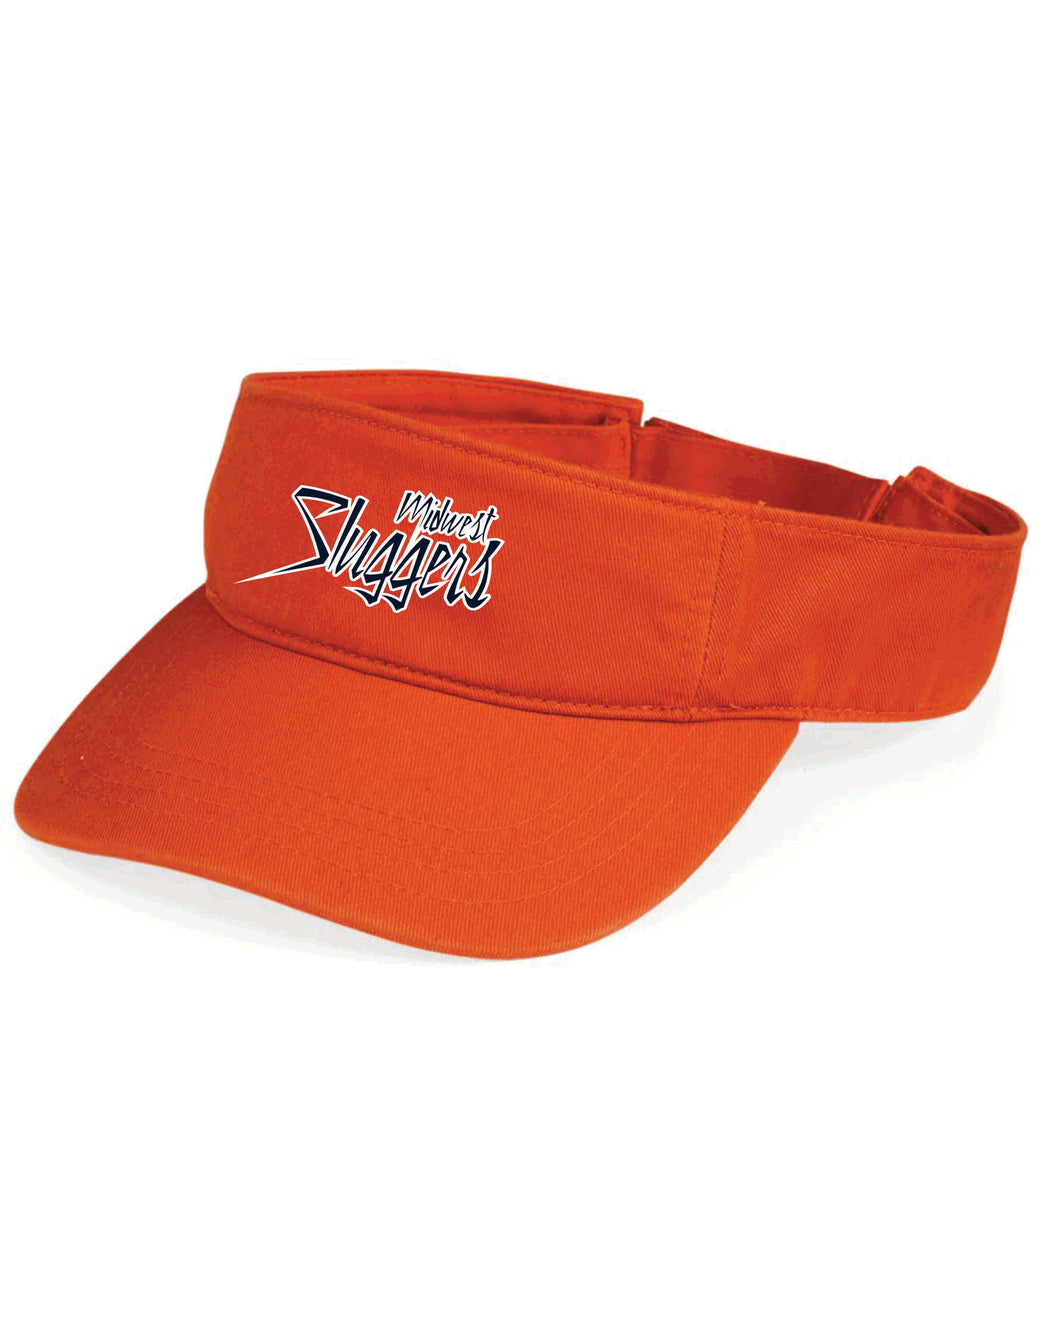 Midwest Sluggers Visor - Orange